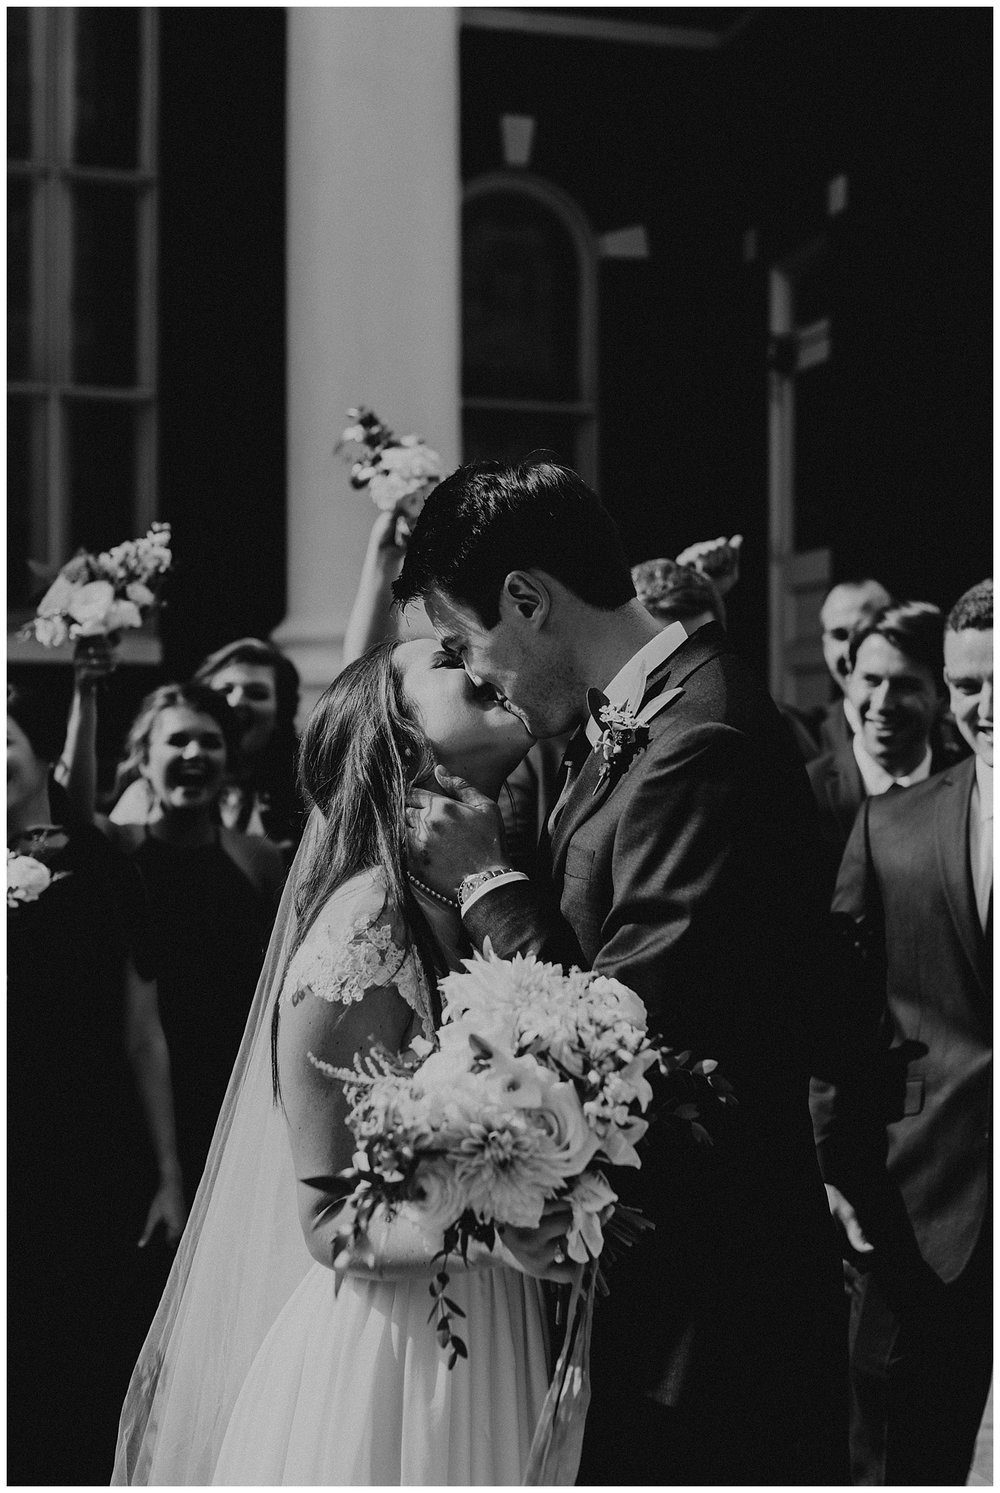 Madalynn Young Photography | Sarah Catherine + Will | Bridge Street Gallery and Loft | Atlanta Wedding Photographer_0303.jpg